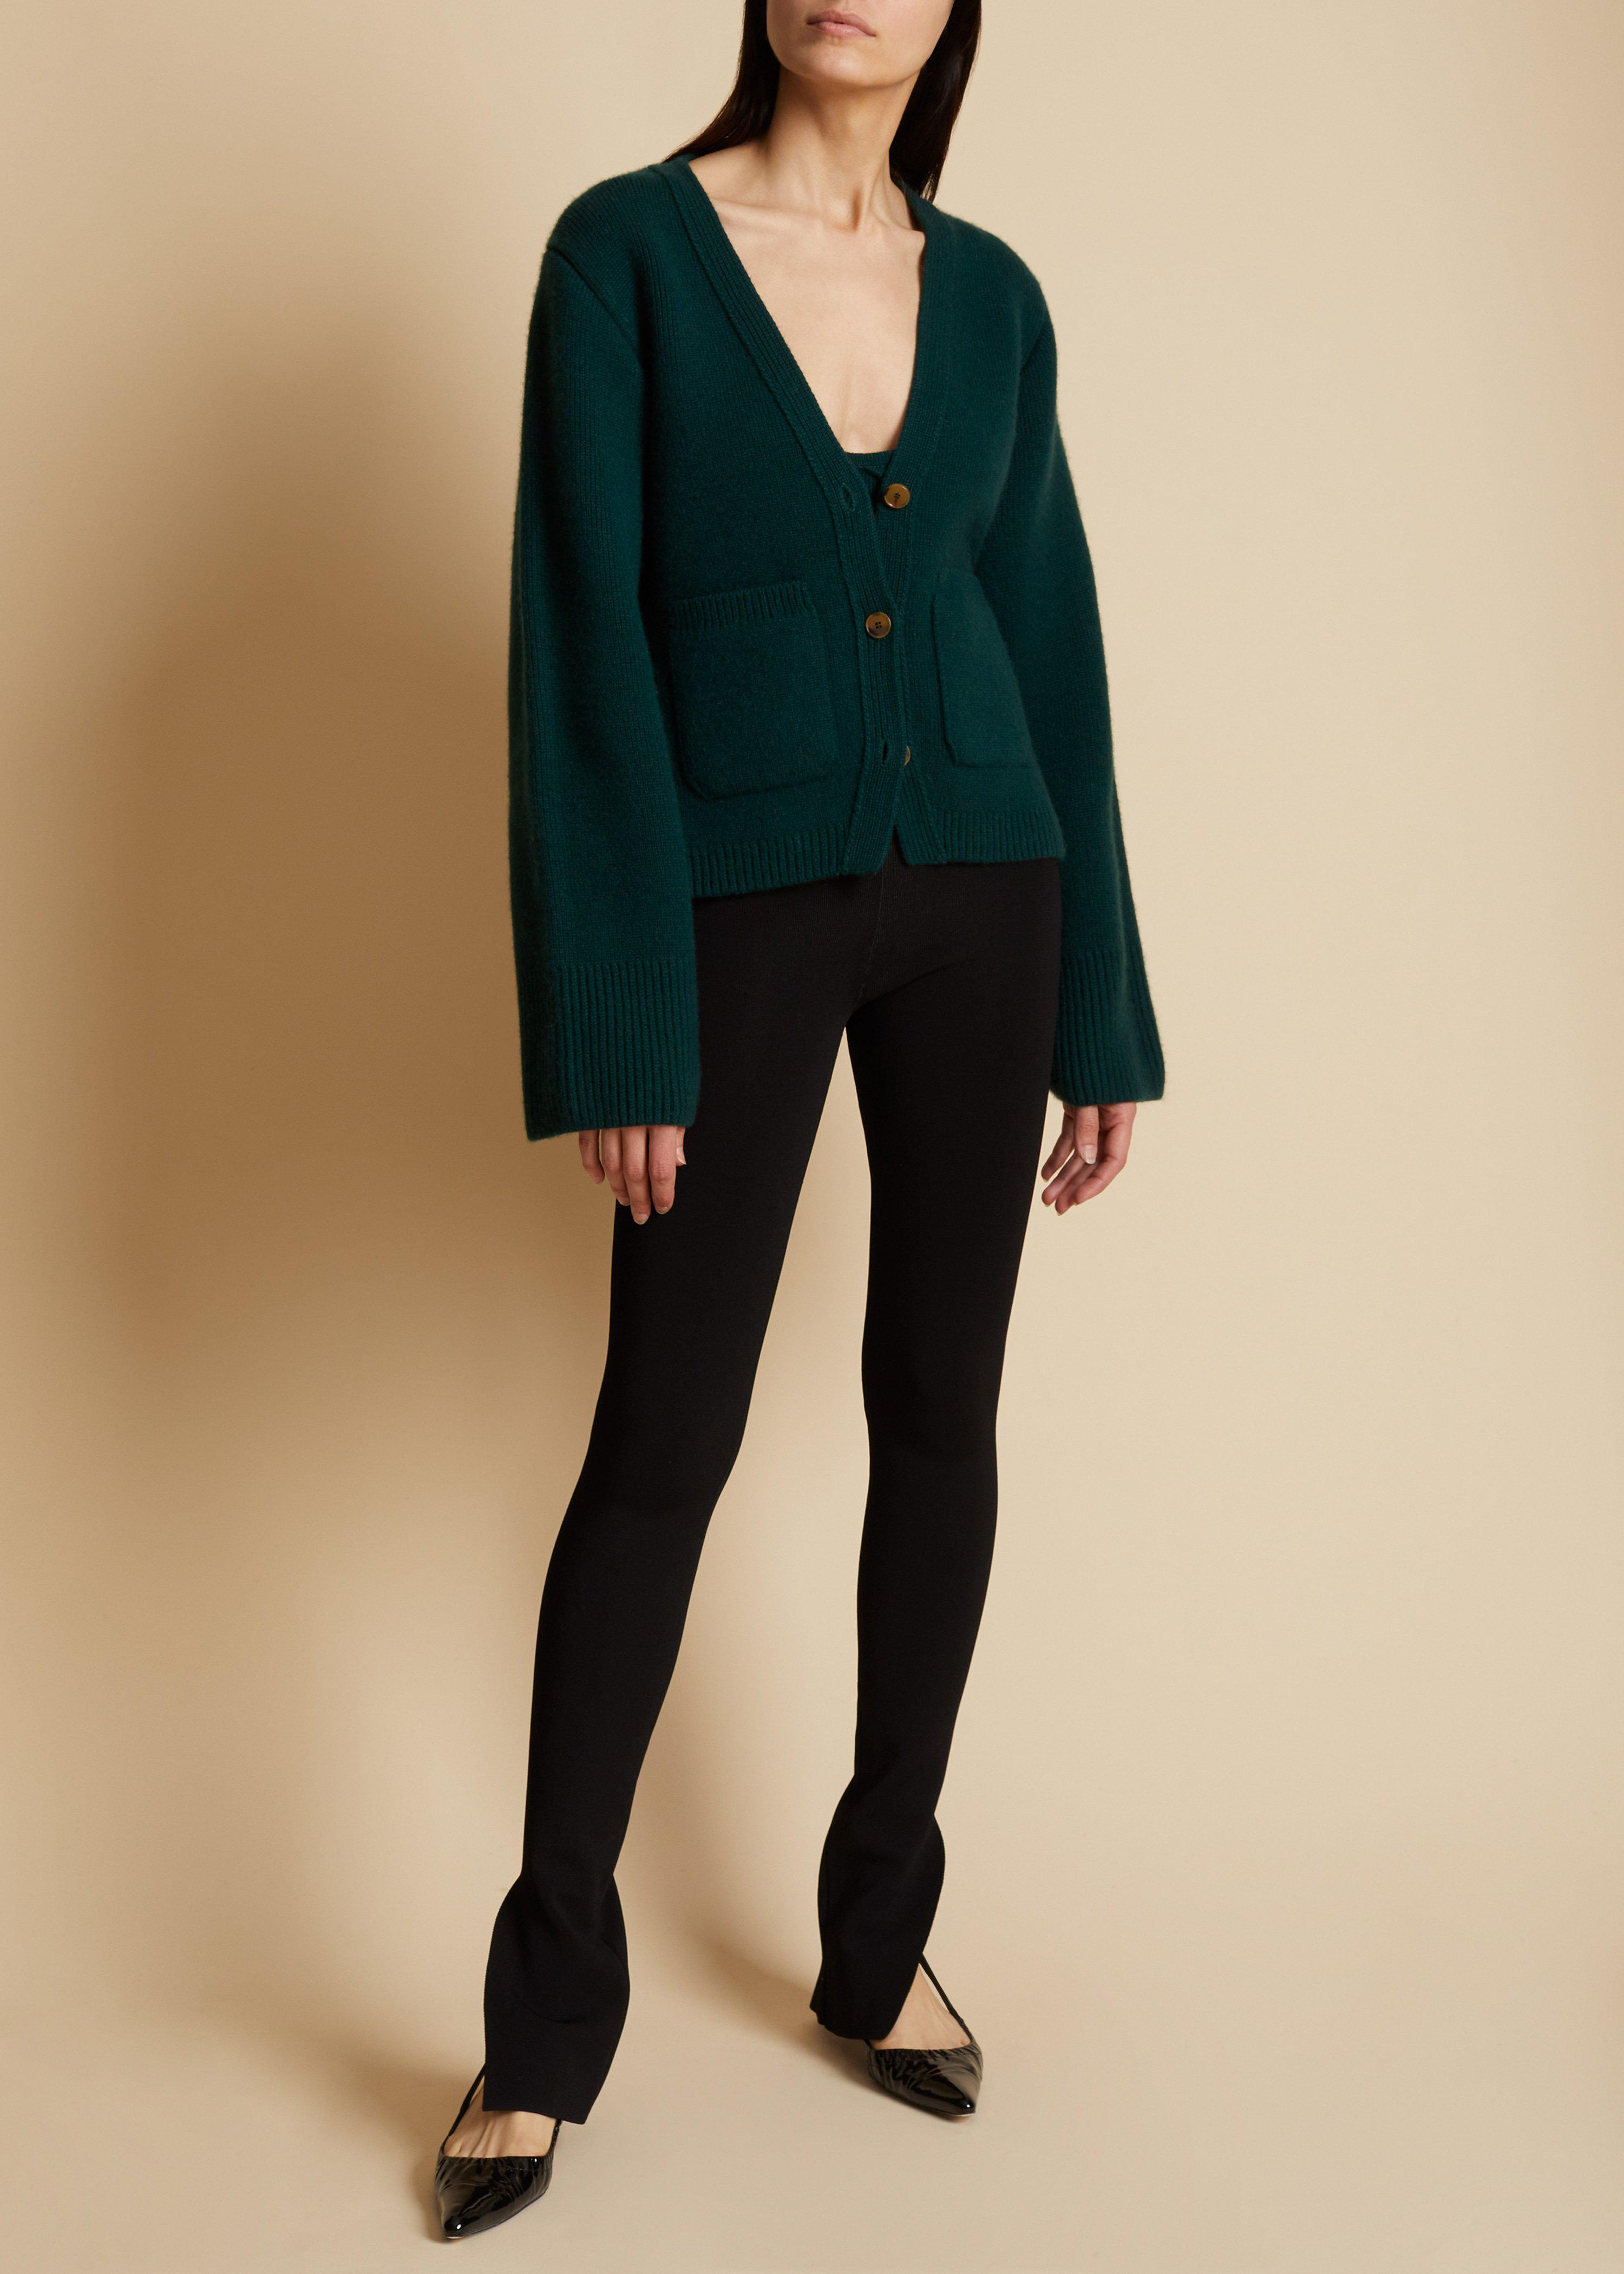 The Scarlet Cardigan in Evergreen 1